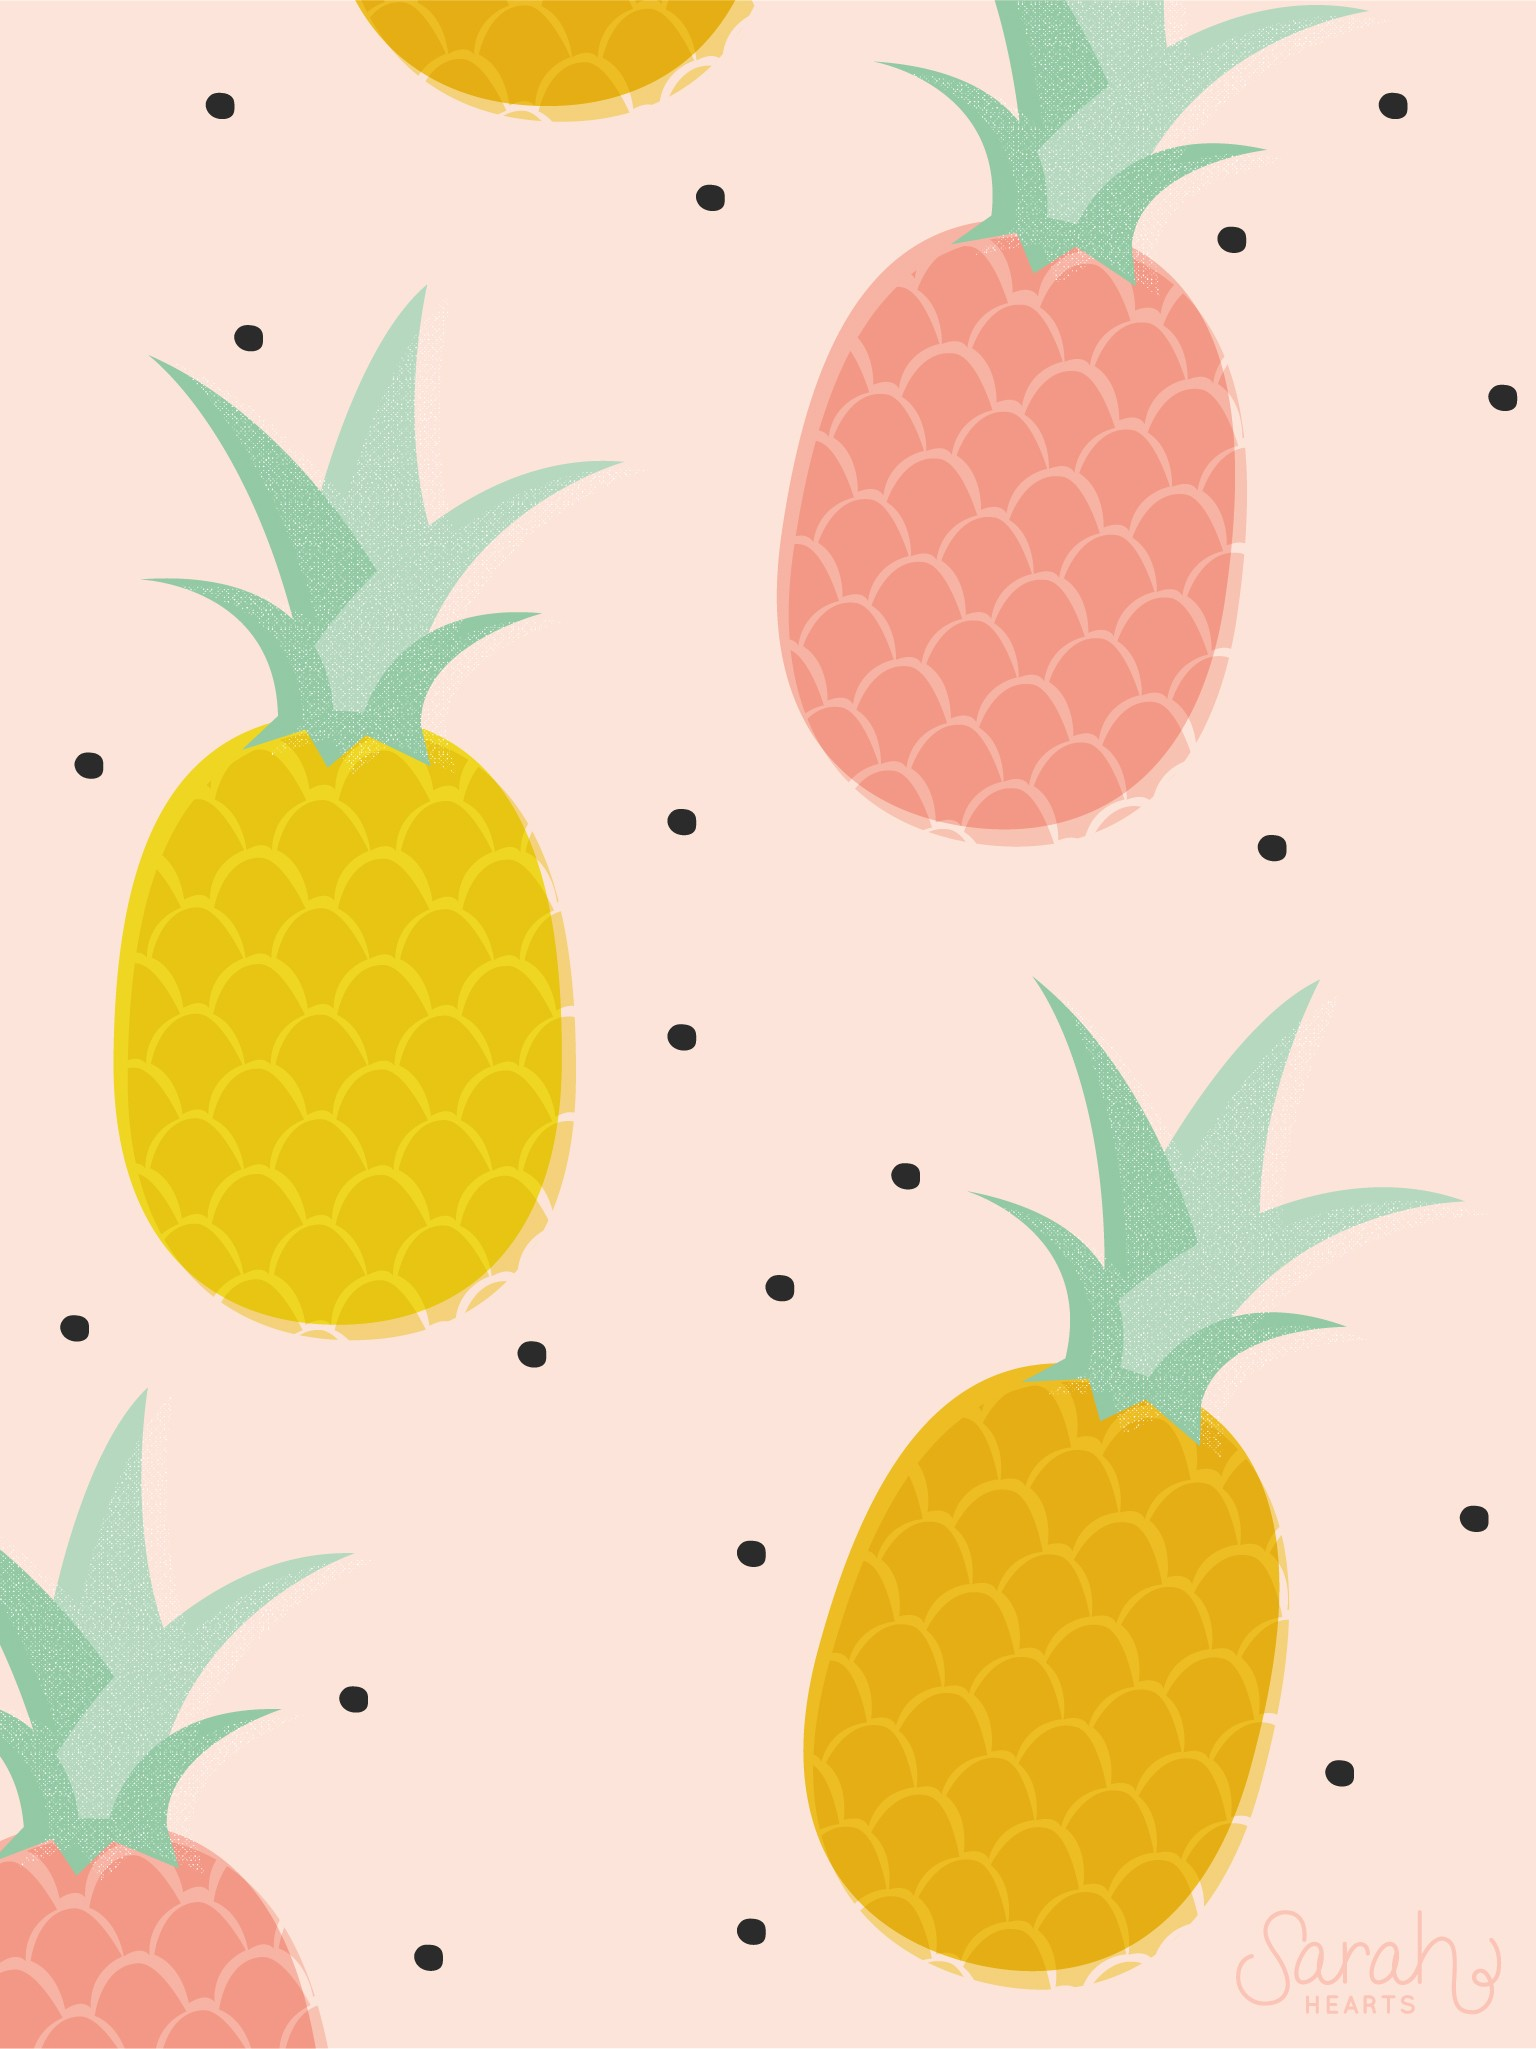 Wallpaper iphone pineapple - Pineapple Wallpaper 1536x2049 For Iphone 6 1536x2049